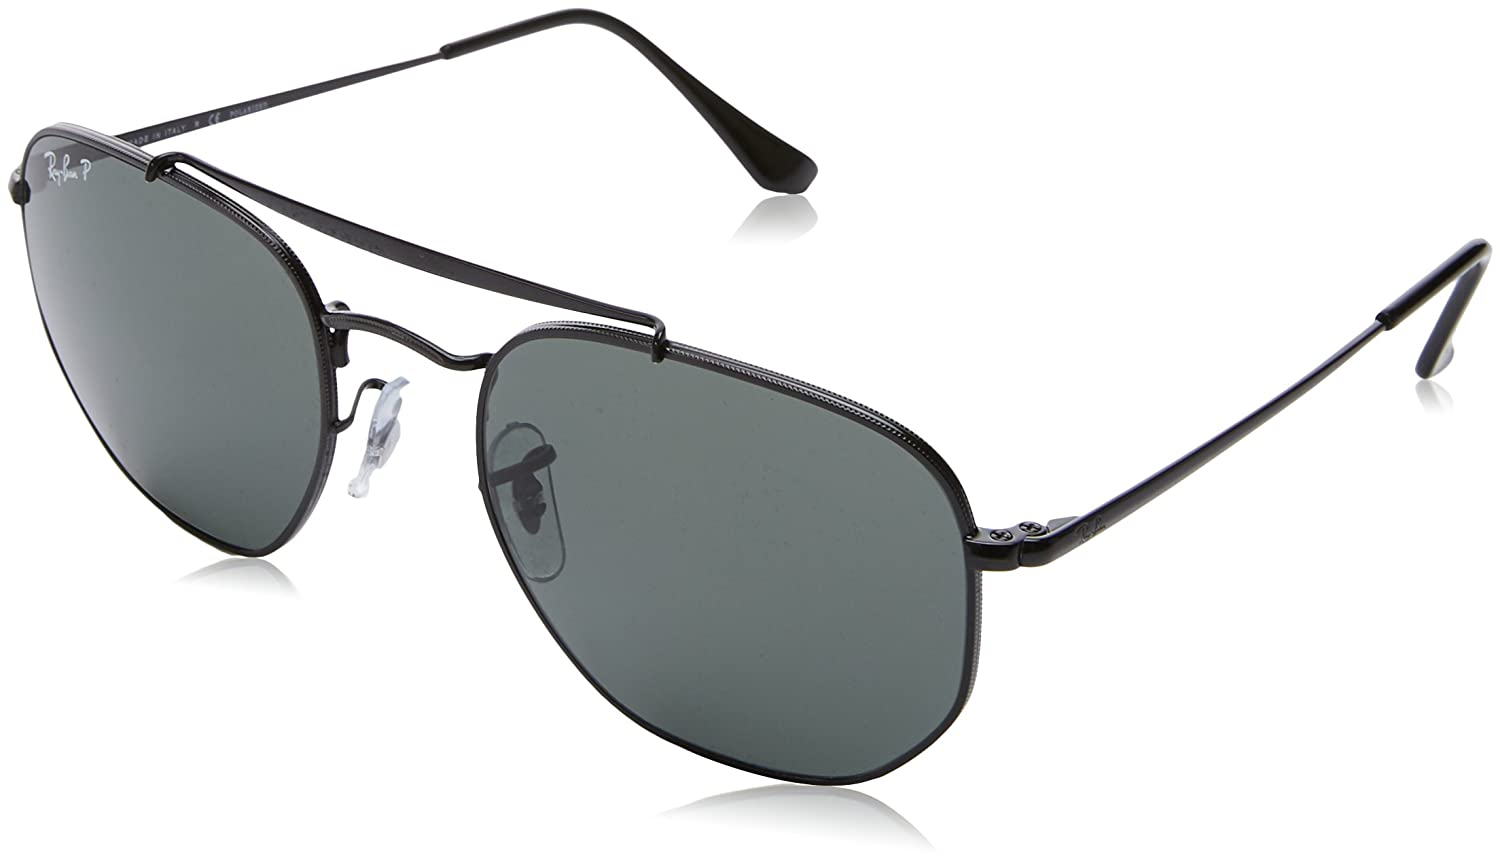 bf007dc9a6d7e Amazon.com  Ray-Ban Metal Unisex Sunglass Polarized Square